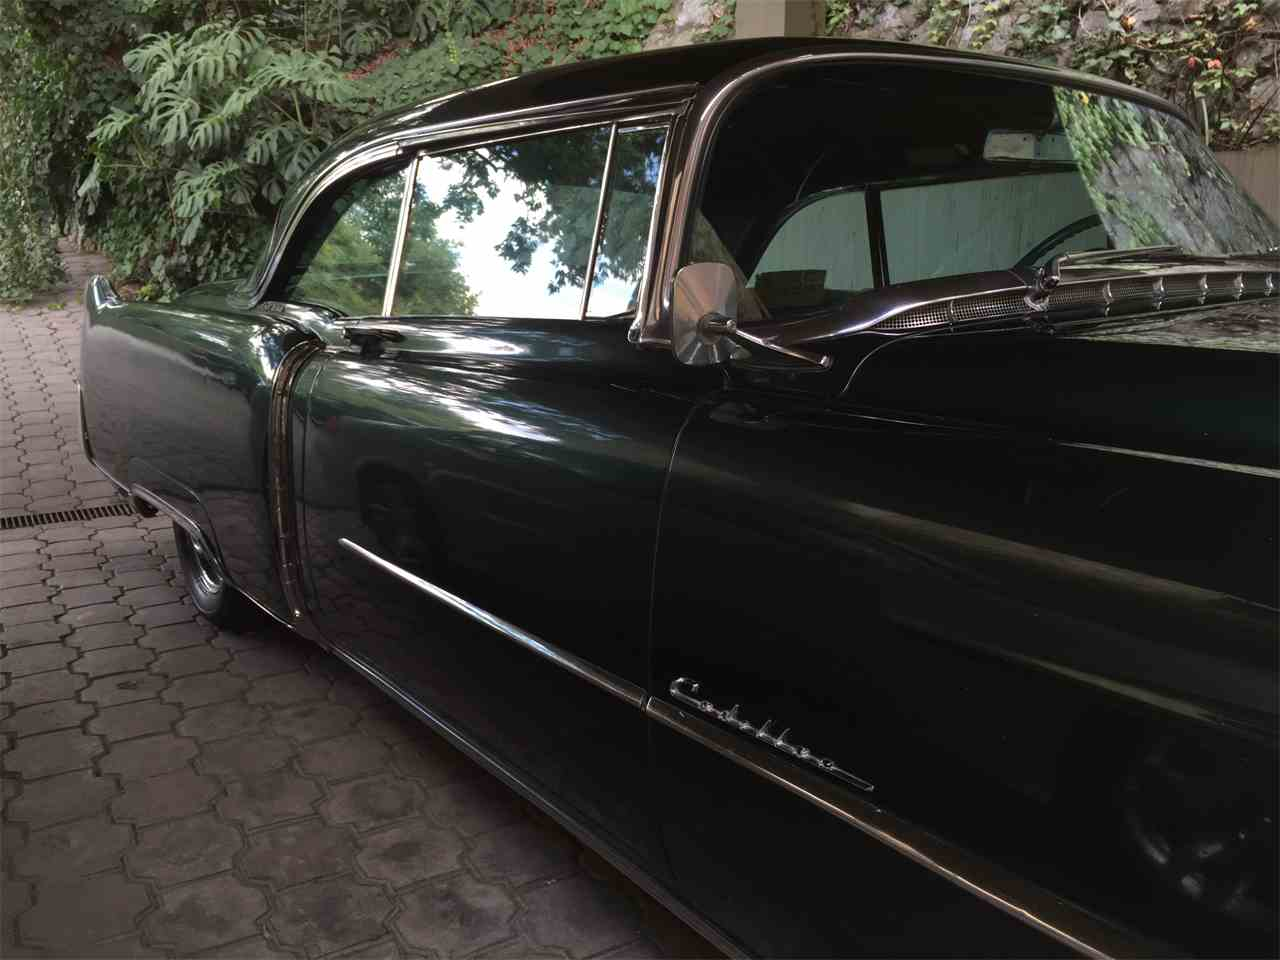 Large Picture of 1954 Cadillac Coupe DeVille located in McAllen Texas - $29,500.00 Offered by a Private Seller - INAP